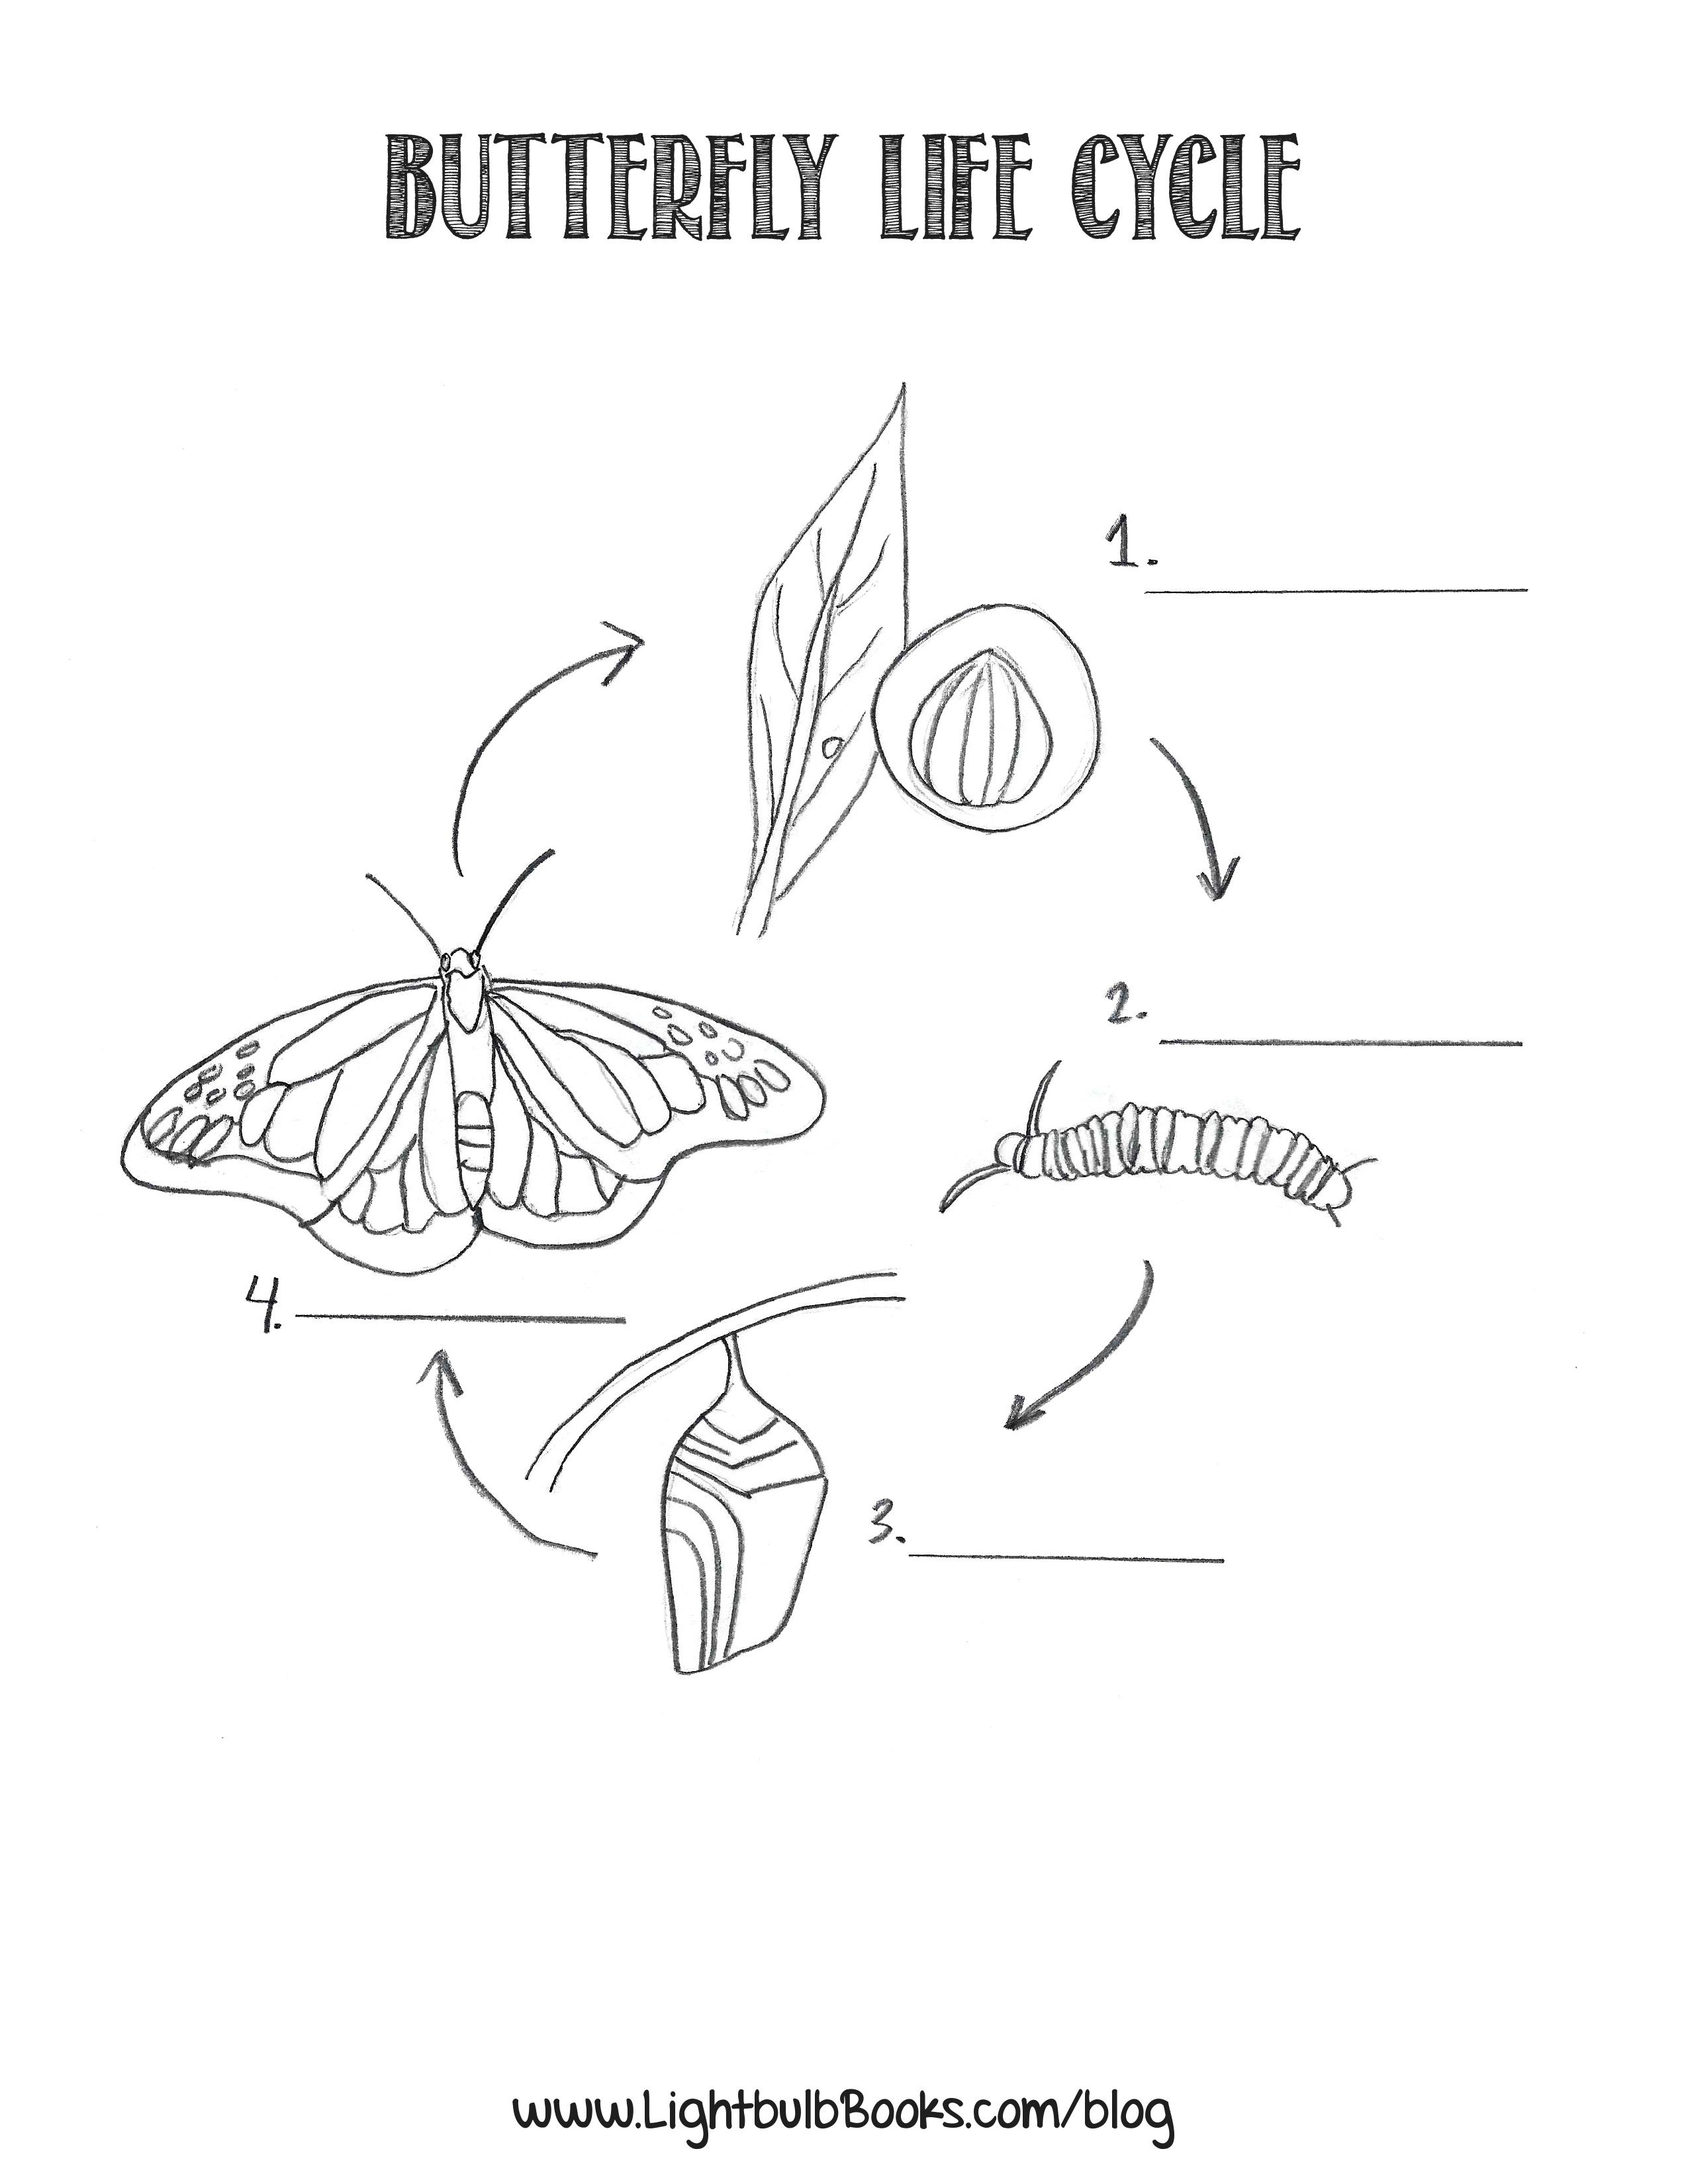 The Life Cycle of a Butterfly   Create WebQuest